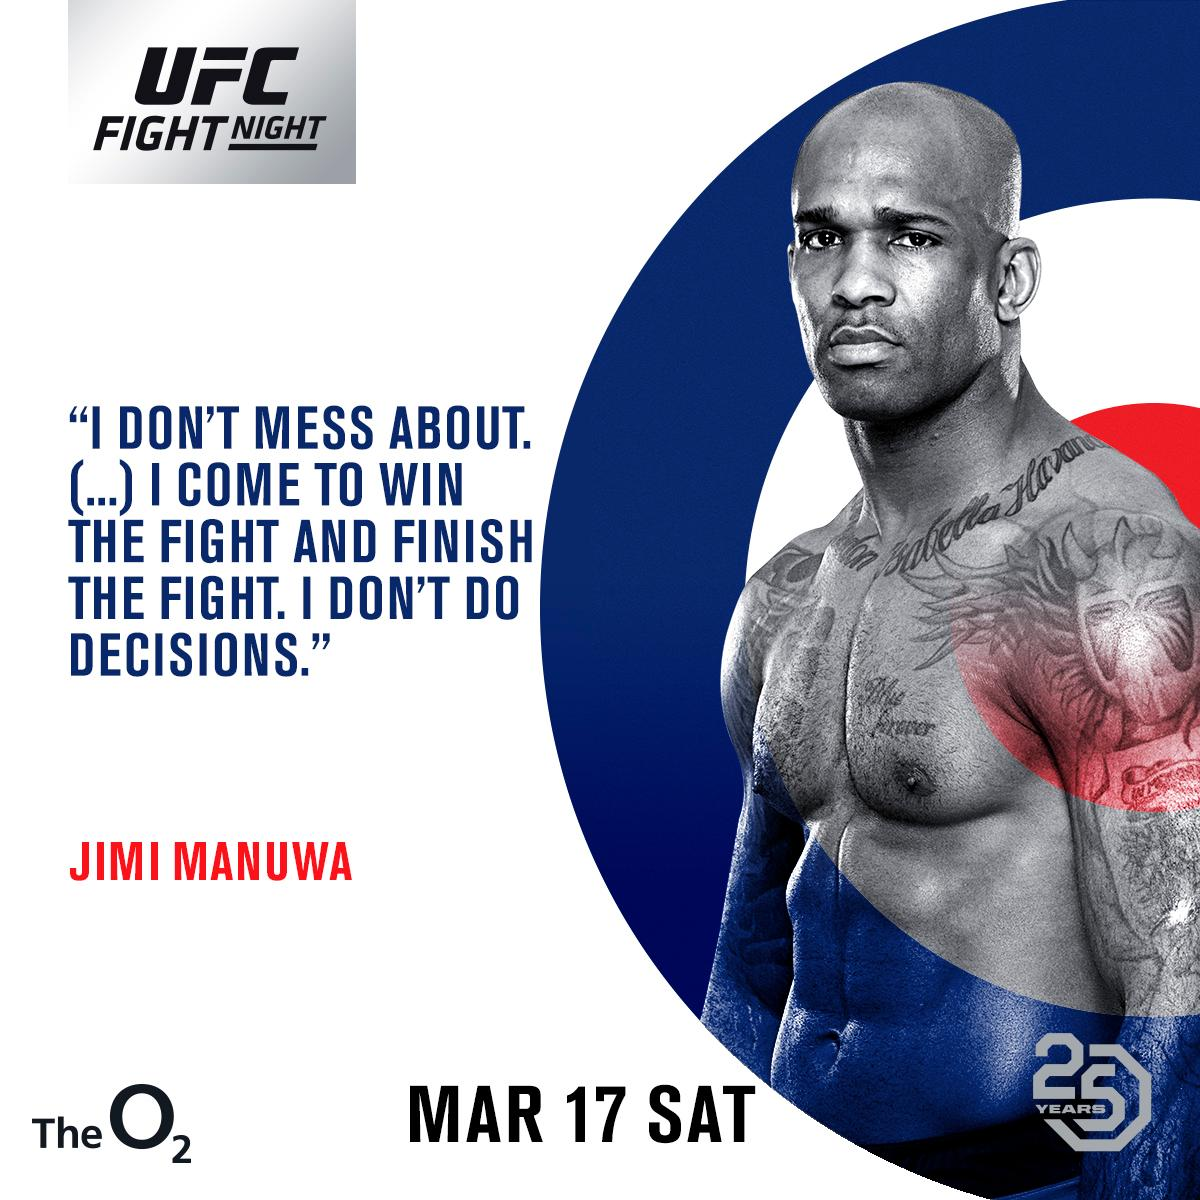 Is a repeat performance in London in-store for @PosterboyJM? ⤵️ #UFCLondon